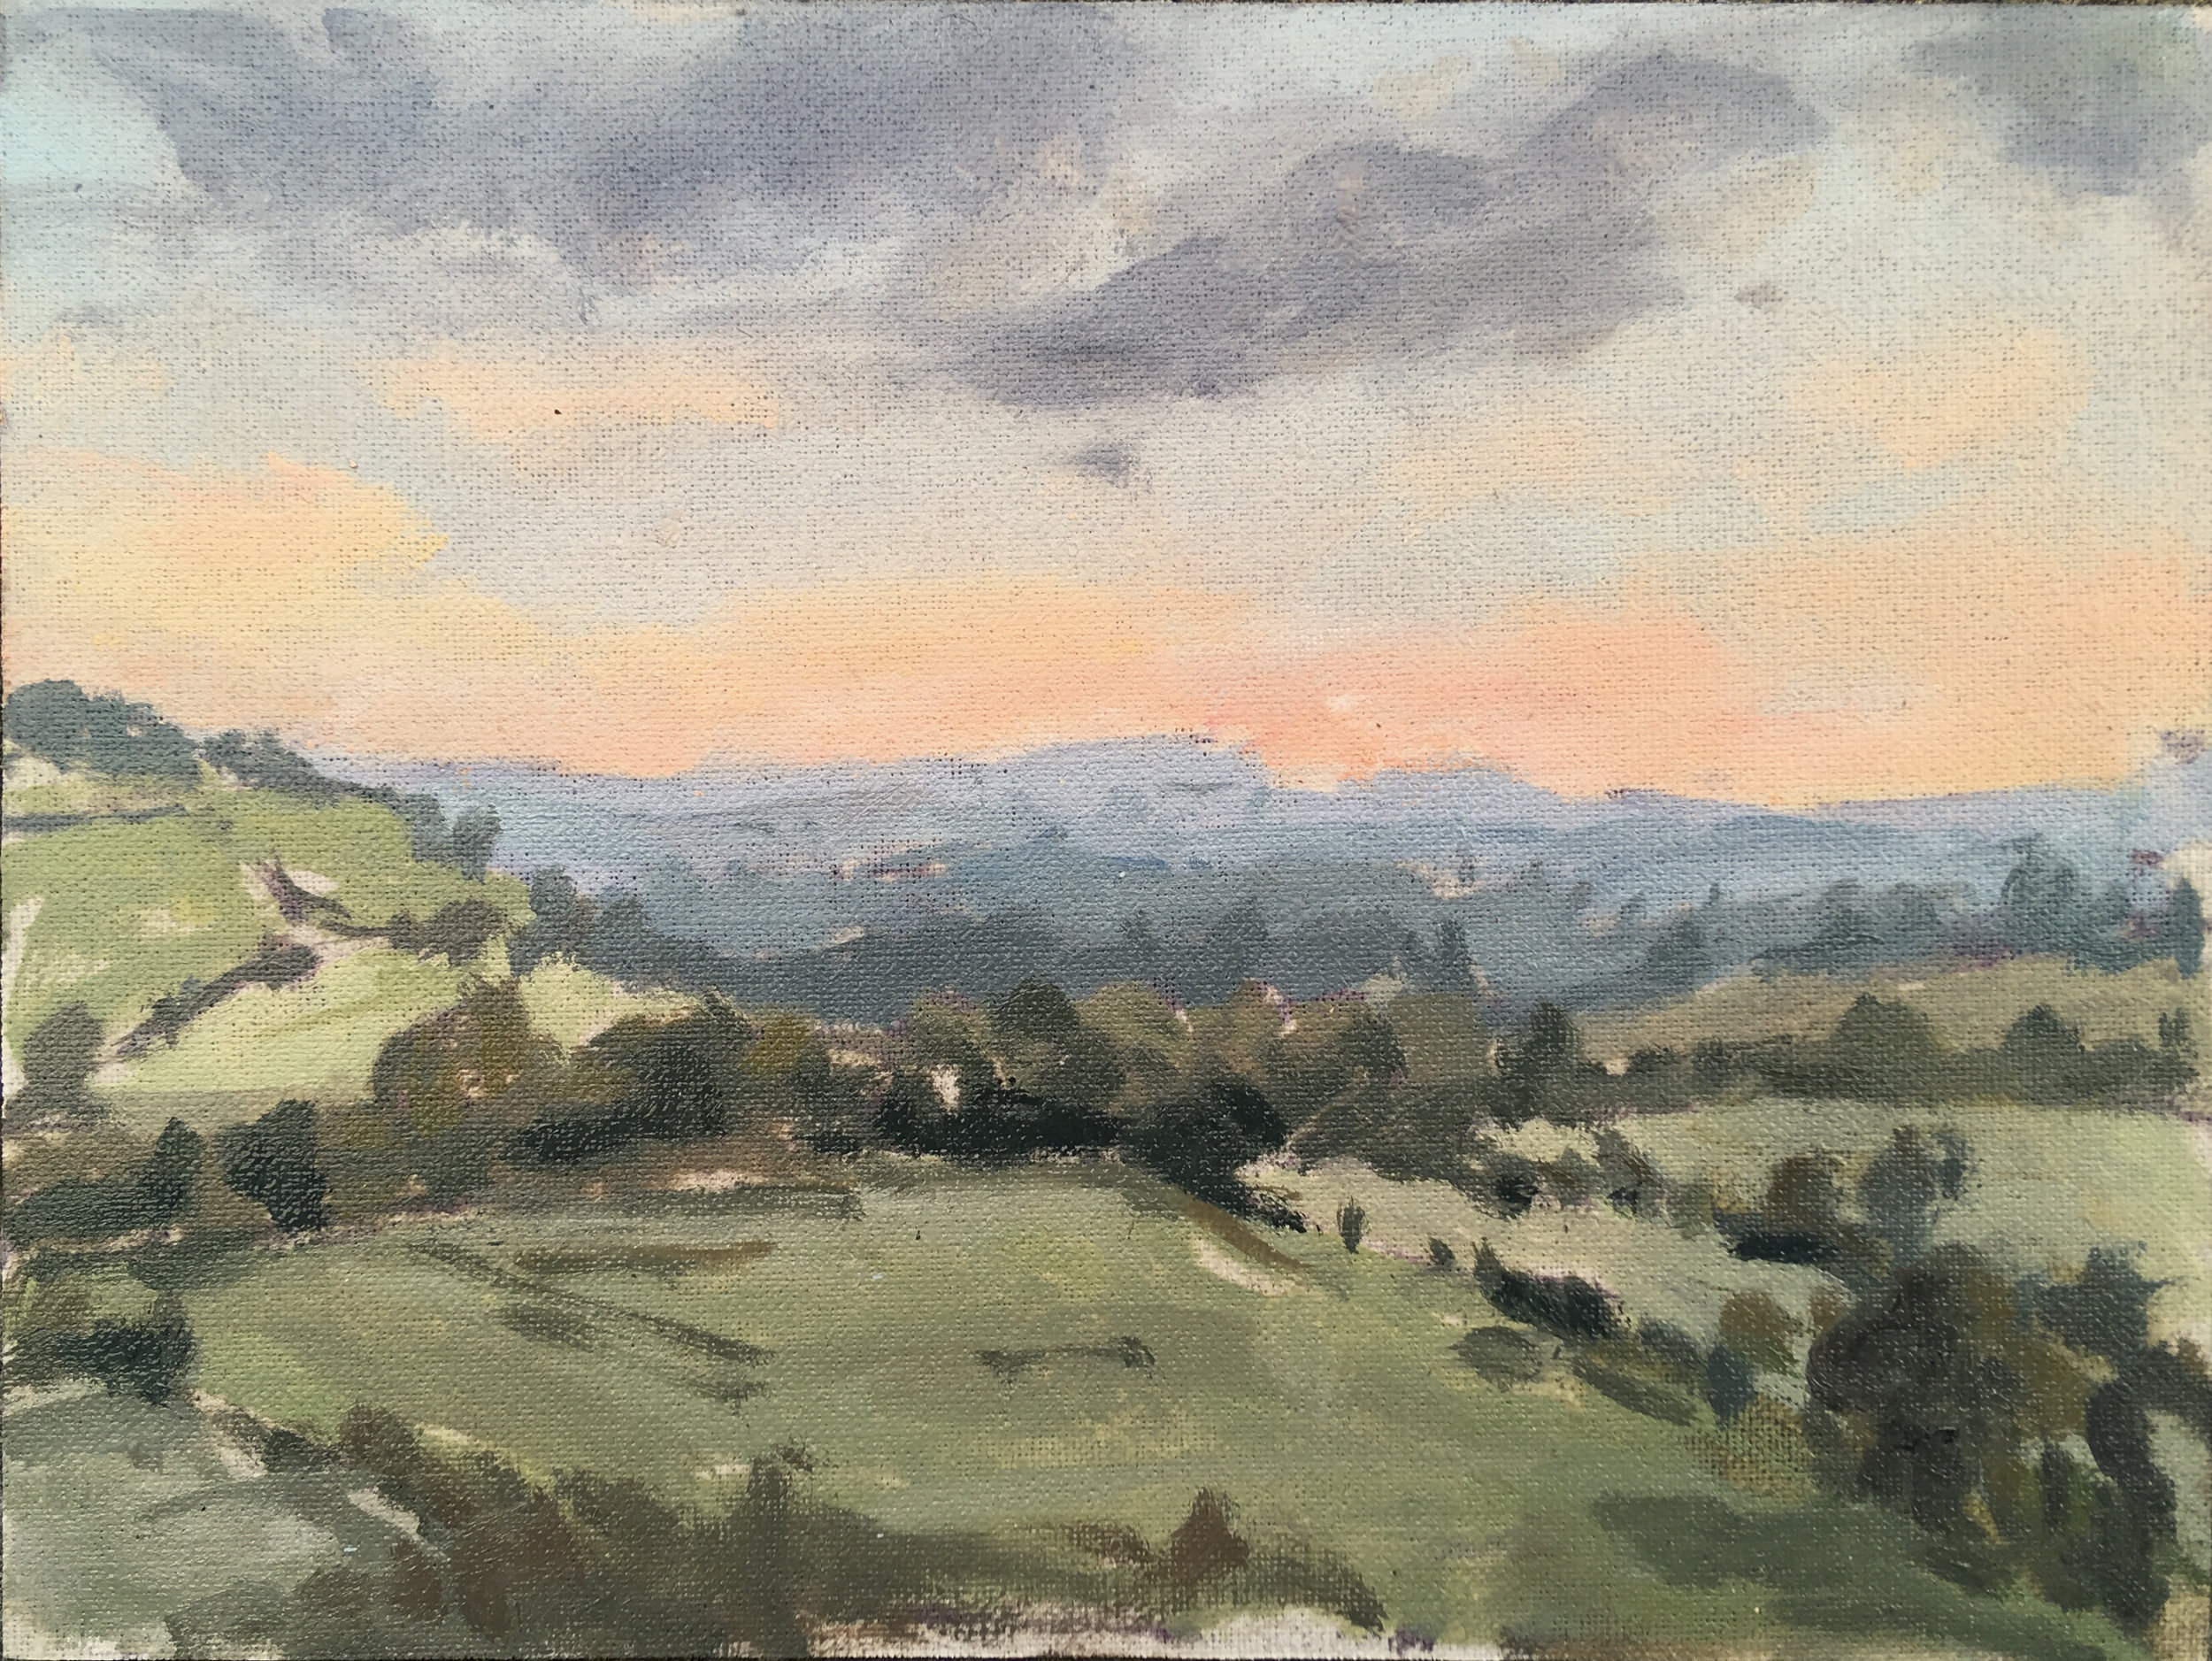 'Autumn View from Hare Pie Hill' 18 x 24 cm oil on linen